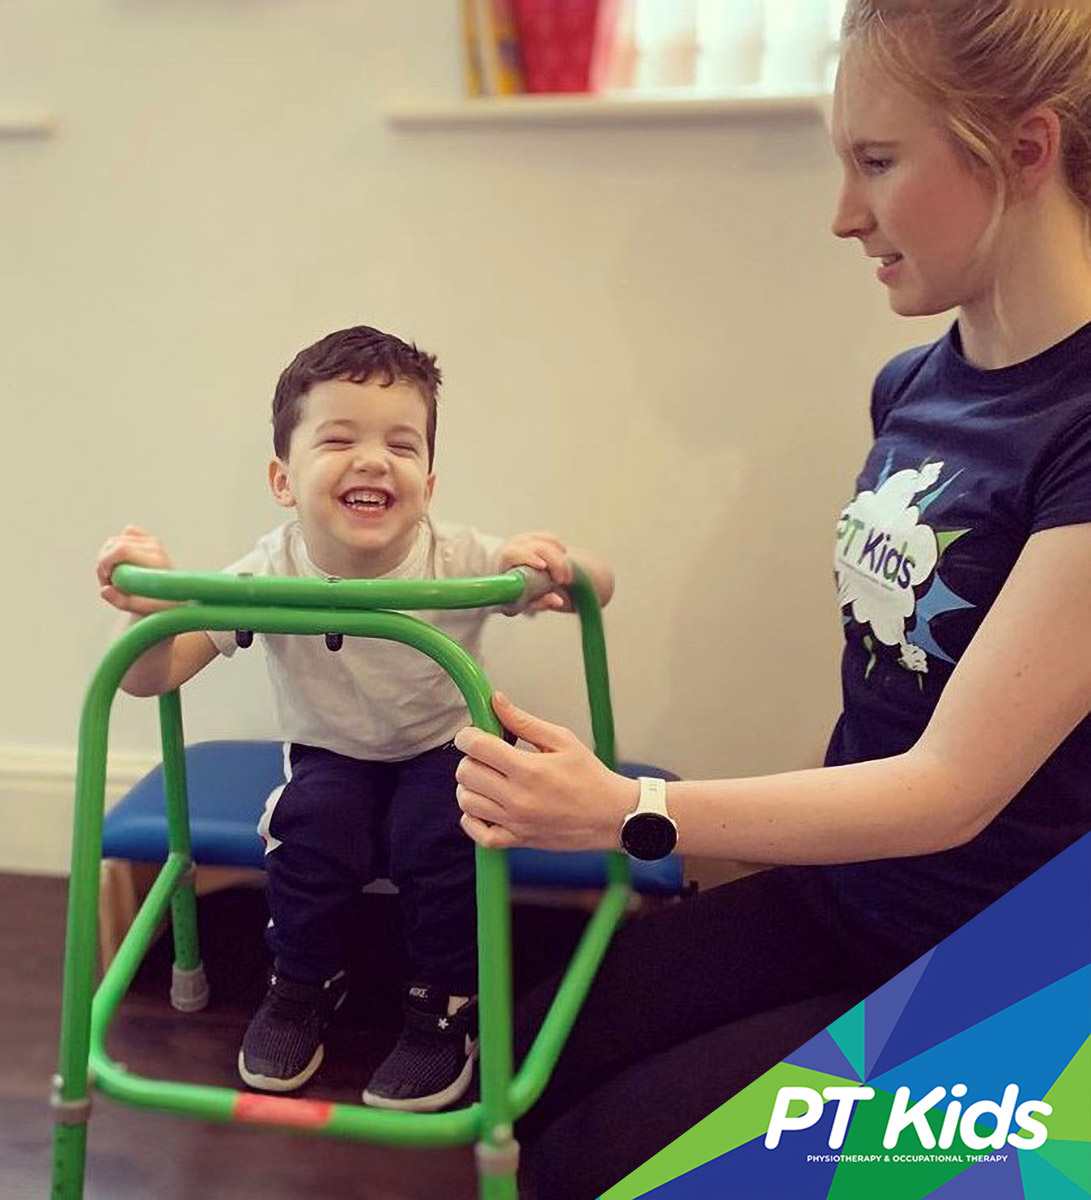 Here at PT Kids, we have some of the most frequently asked questions